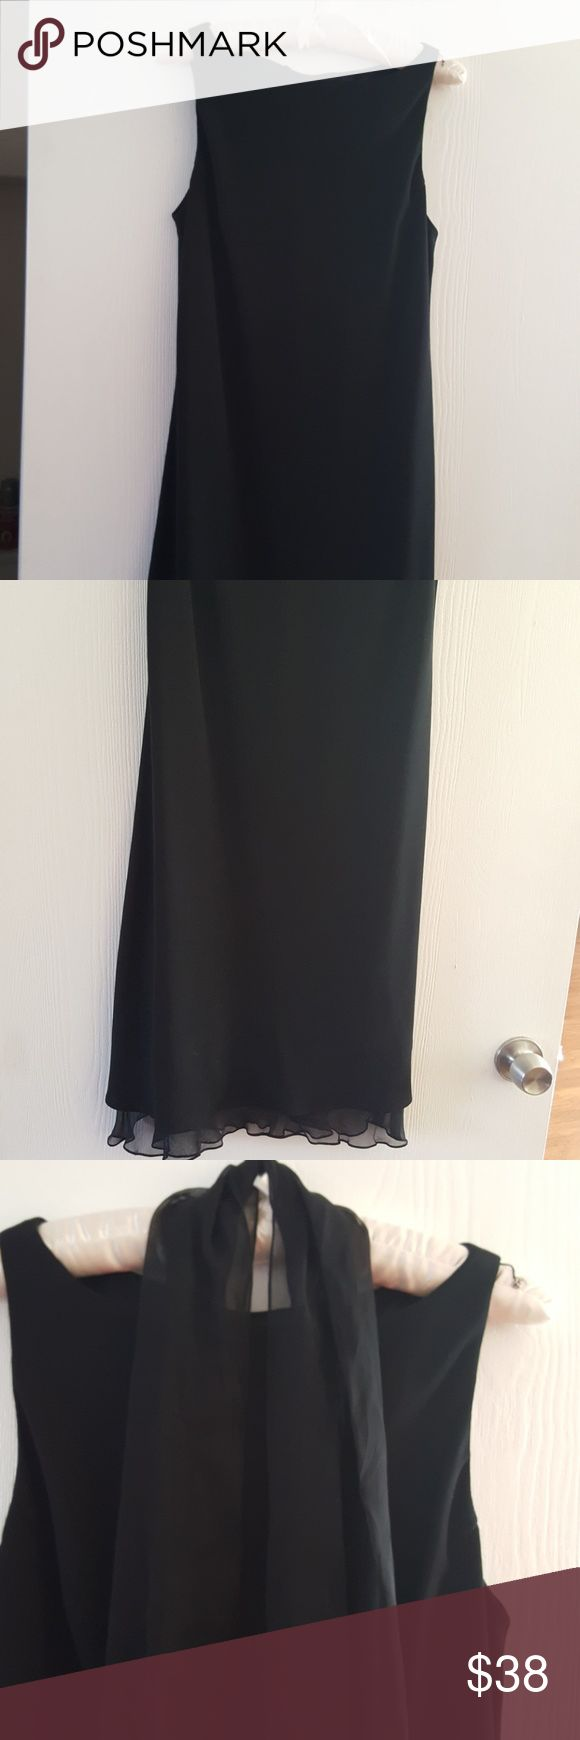 Jones New York size 12 simple black dress with she Jones New York simple black dress with fluted sheer bottom and removable scarf.  Great for reunions holidays weddings  very simple classy yet dressy . Also includes snap enclosures  to hide your bra straps! EUC.  Smoke-free pet-free home Jones New York Dresses